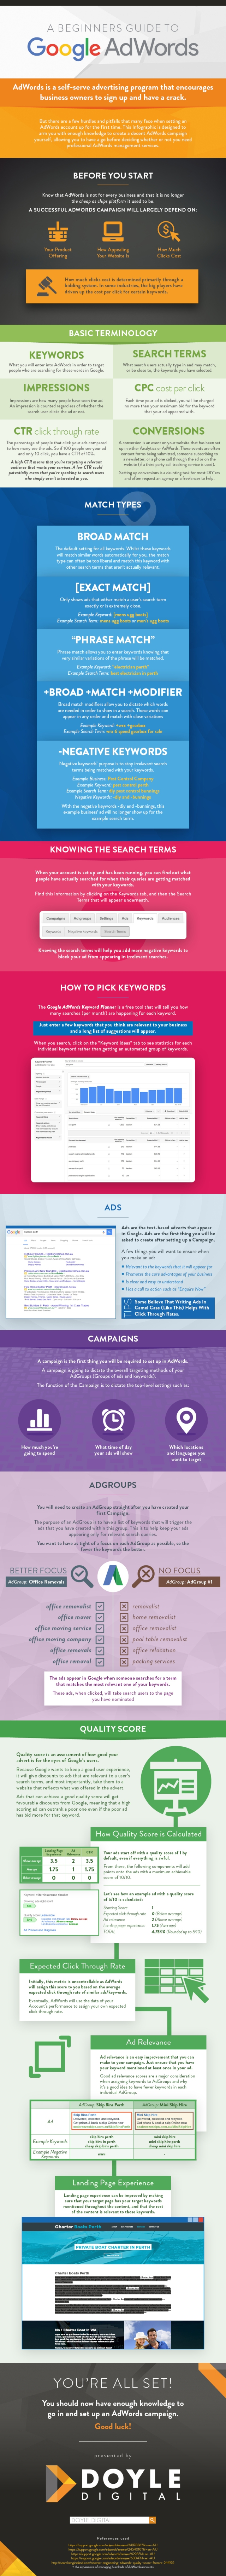 google-adwords-a-beginners-guide-to-pay-per-click-marketing